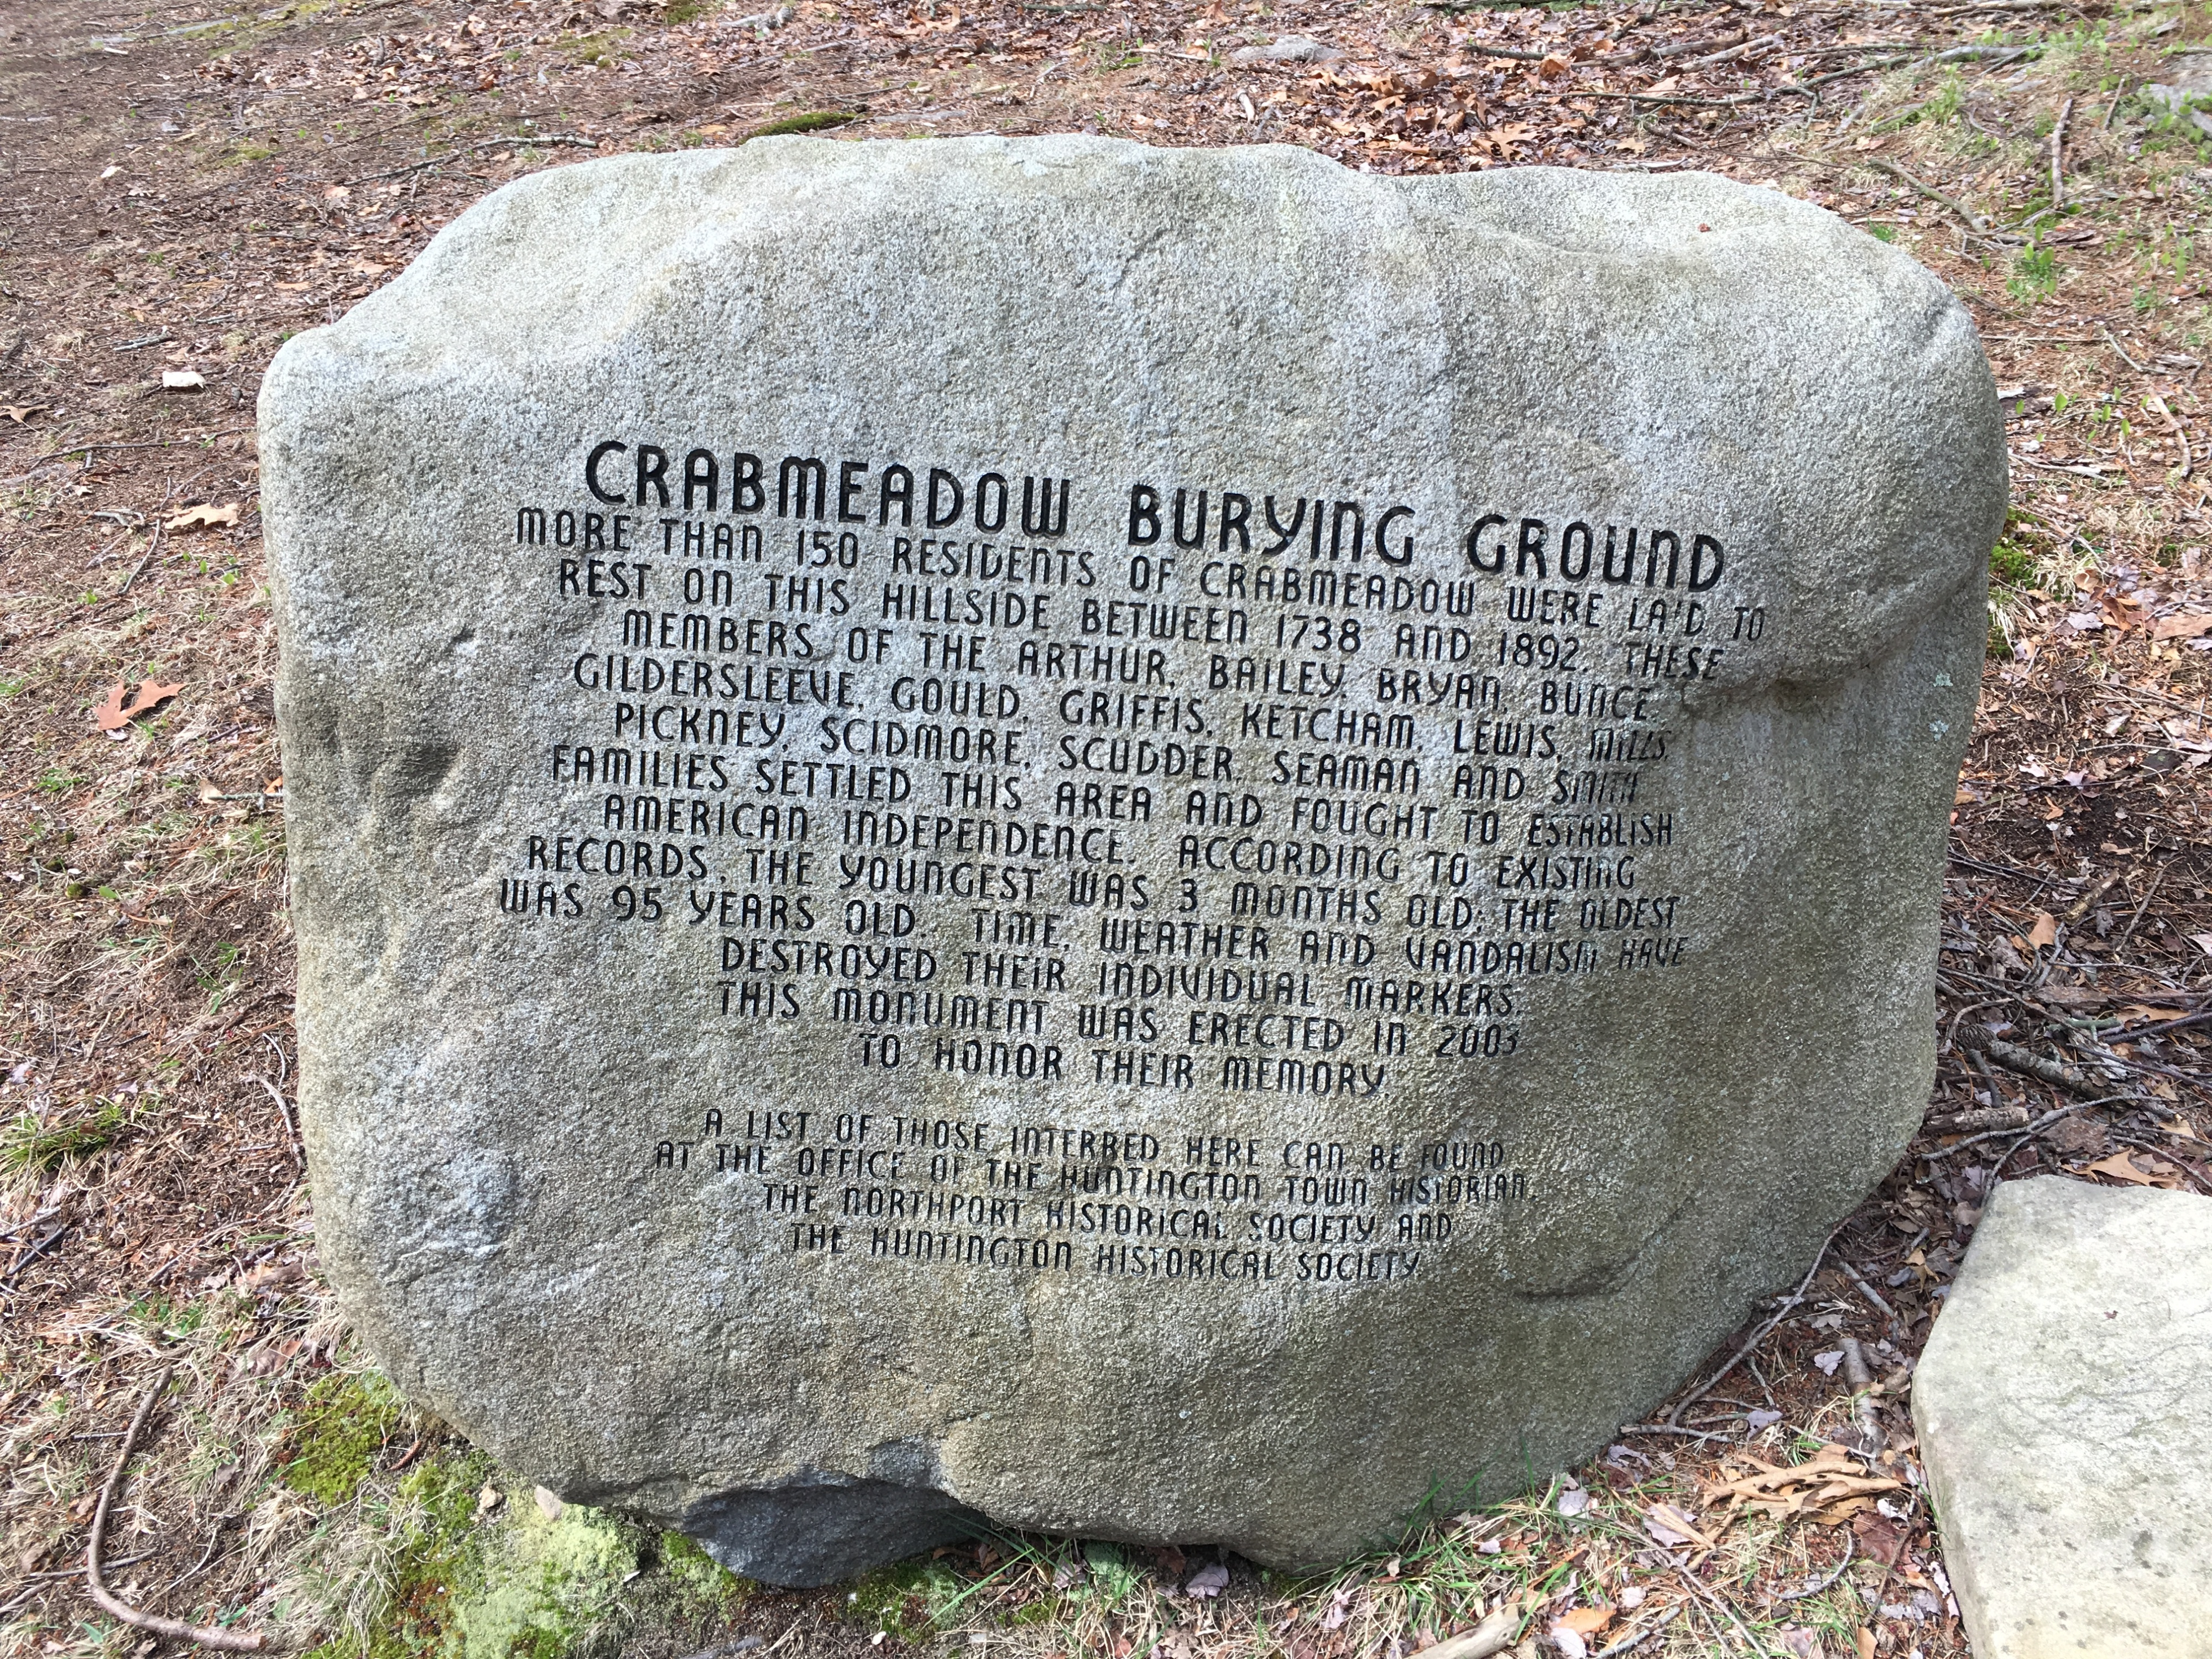 The eighteenth century burying ground in Crabmeadow has lost most of its grave markers to time, neglect, and vandalism. In 2003, this boulder was installed to replace the missing individual markers.